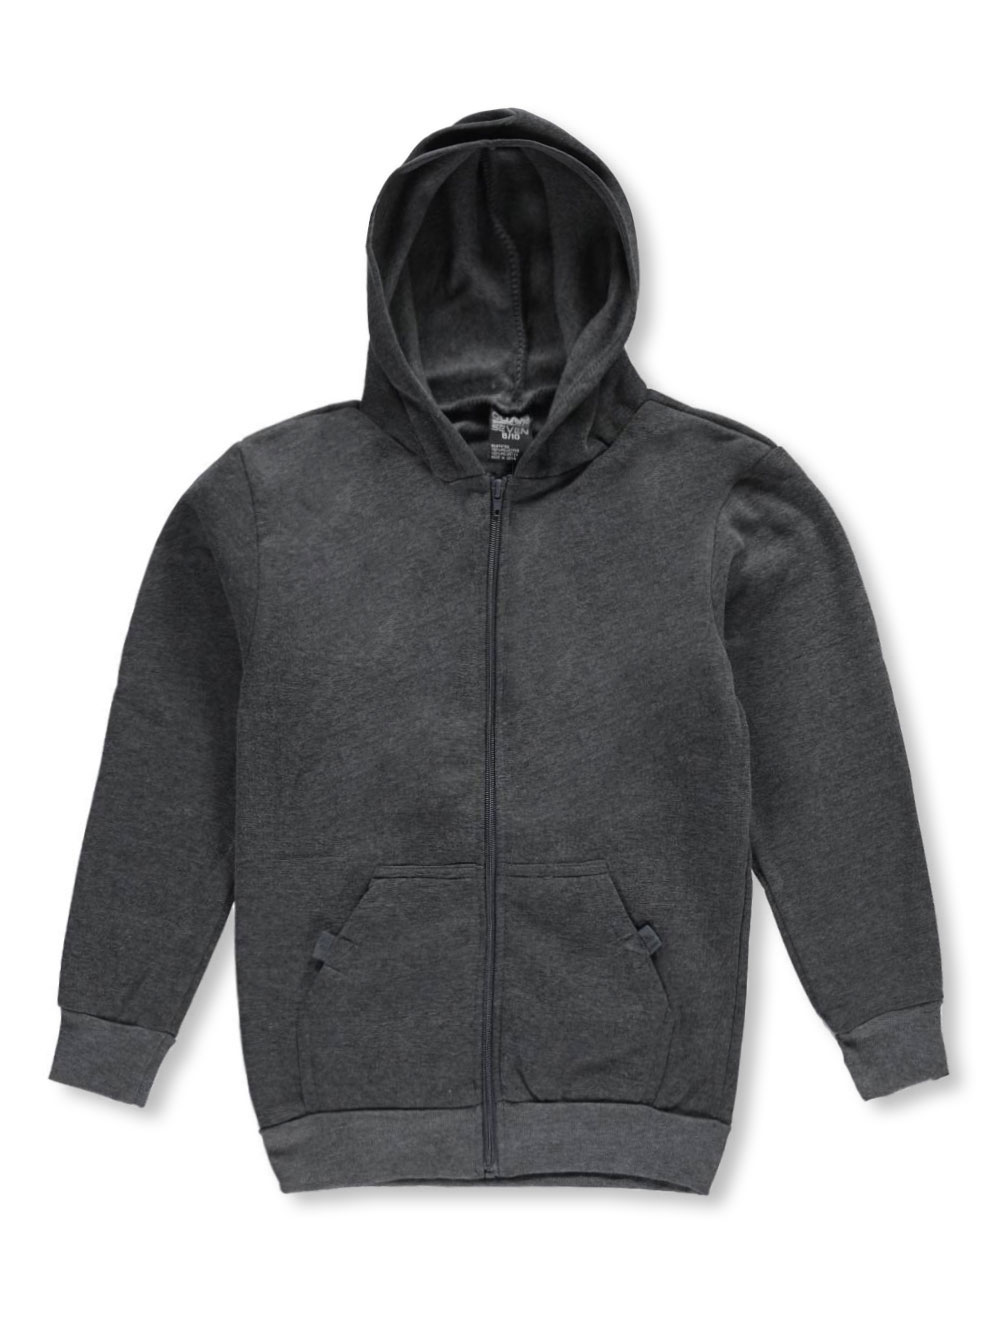 Boys Charcoal Hoodies